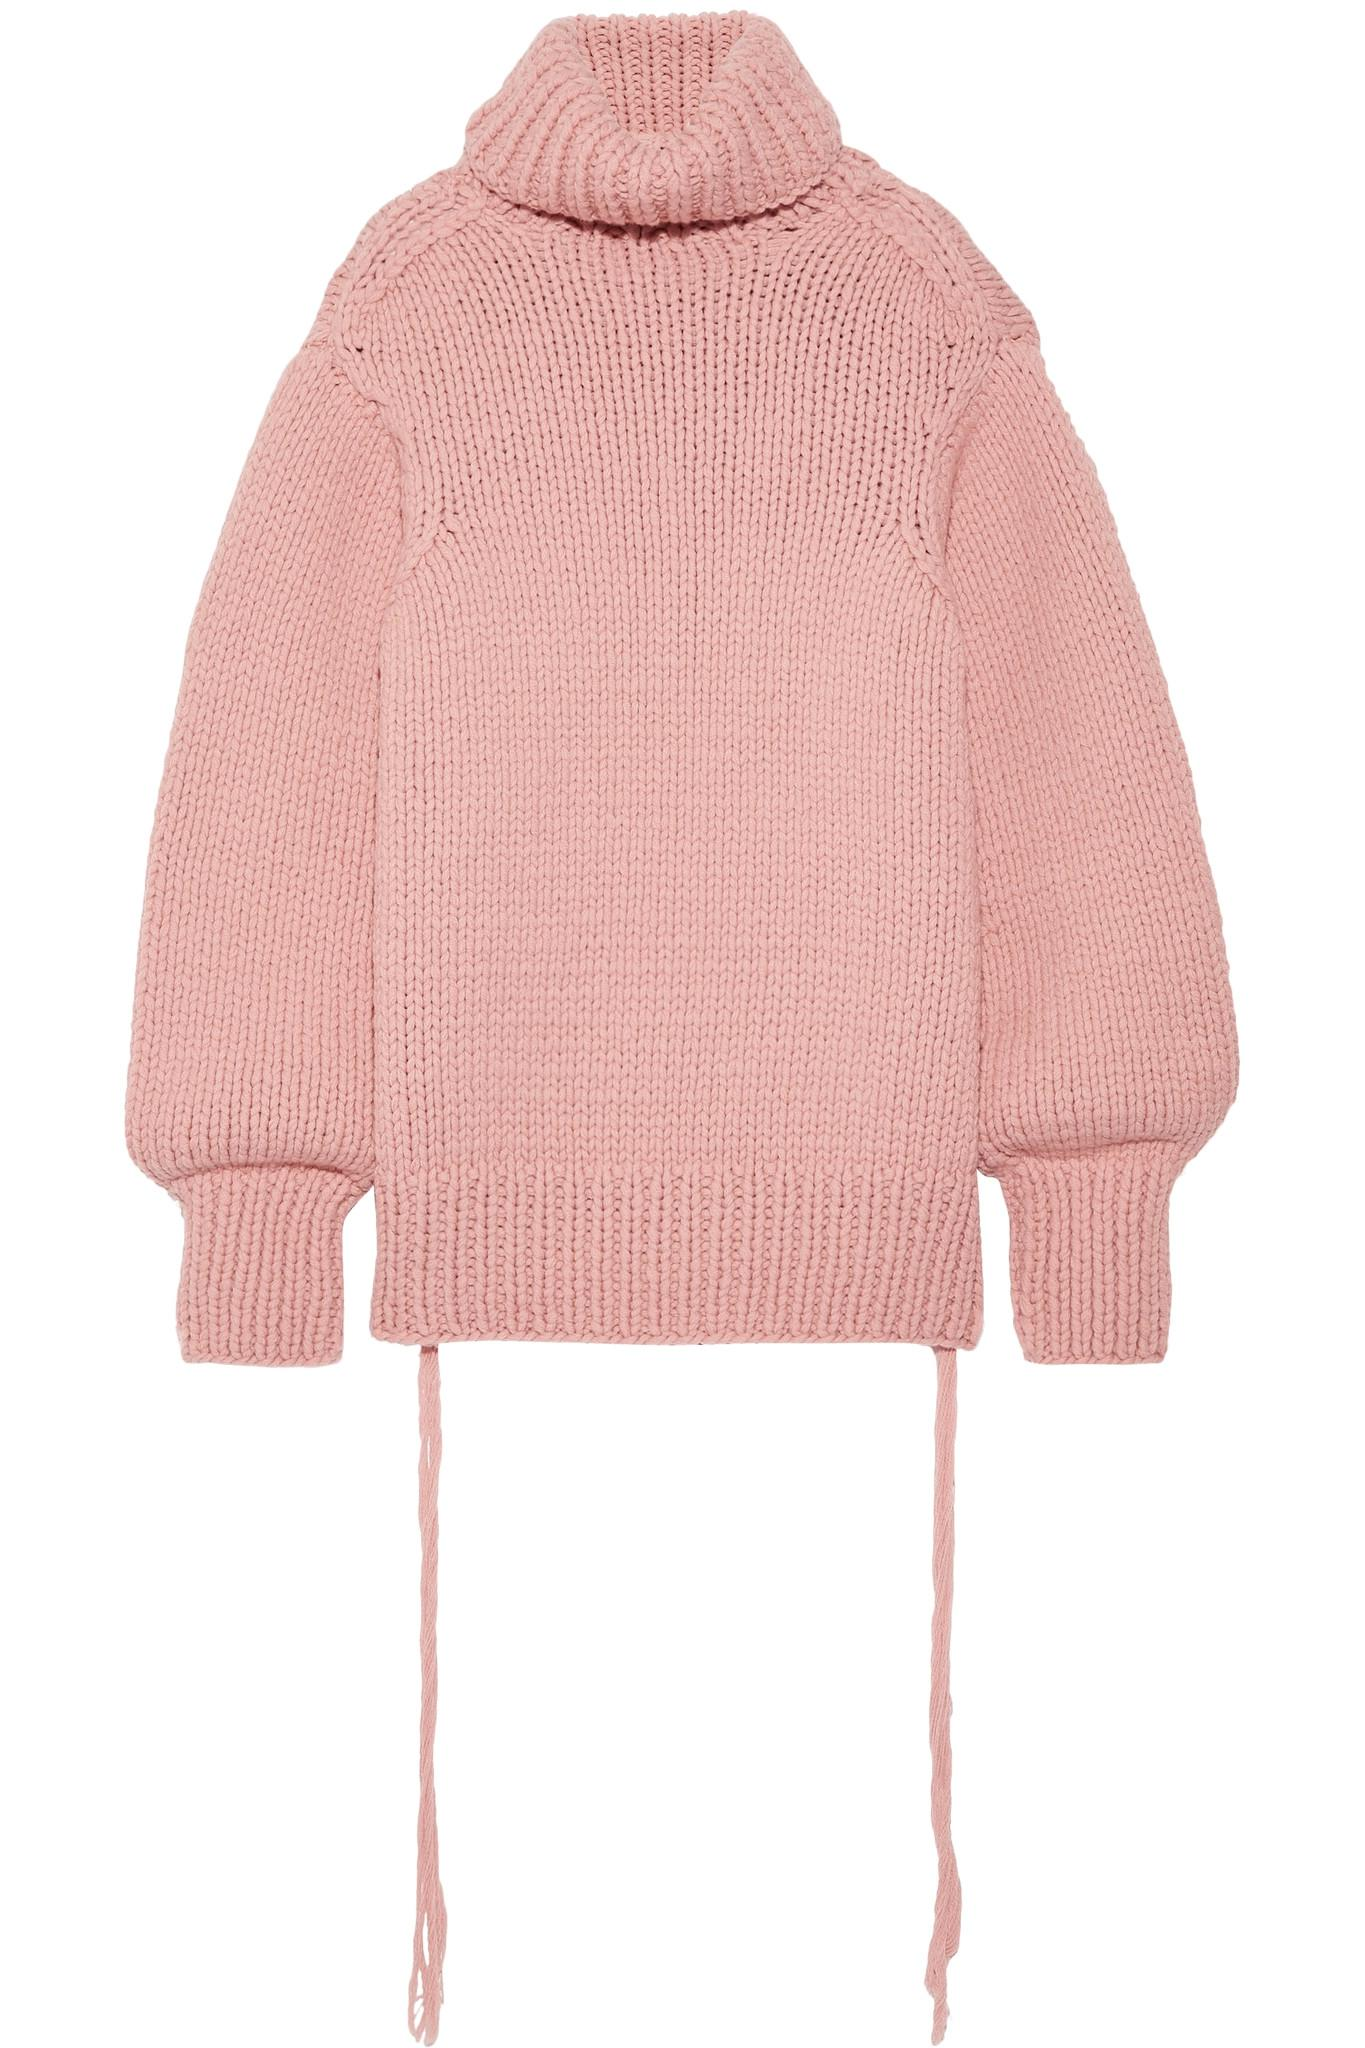 Lyst - JOSEPH Oversized Wool Turtleneck Sweater in Pink e29e8ff9e